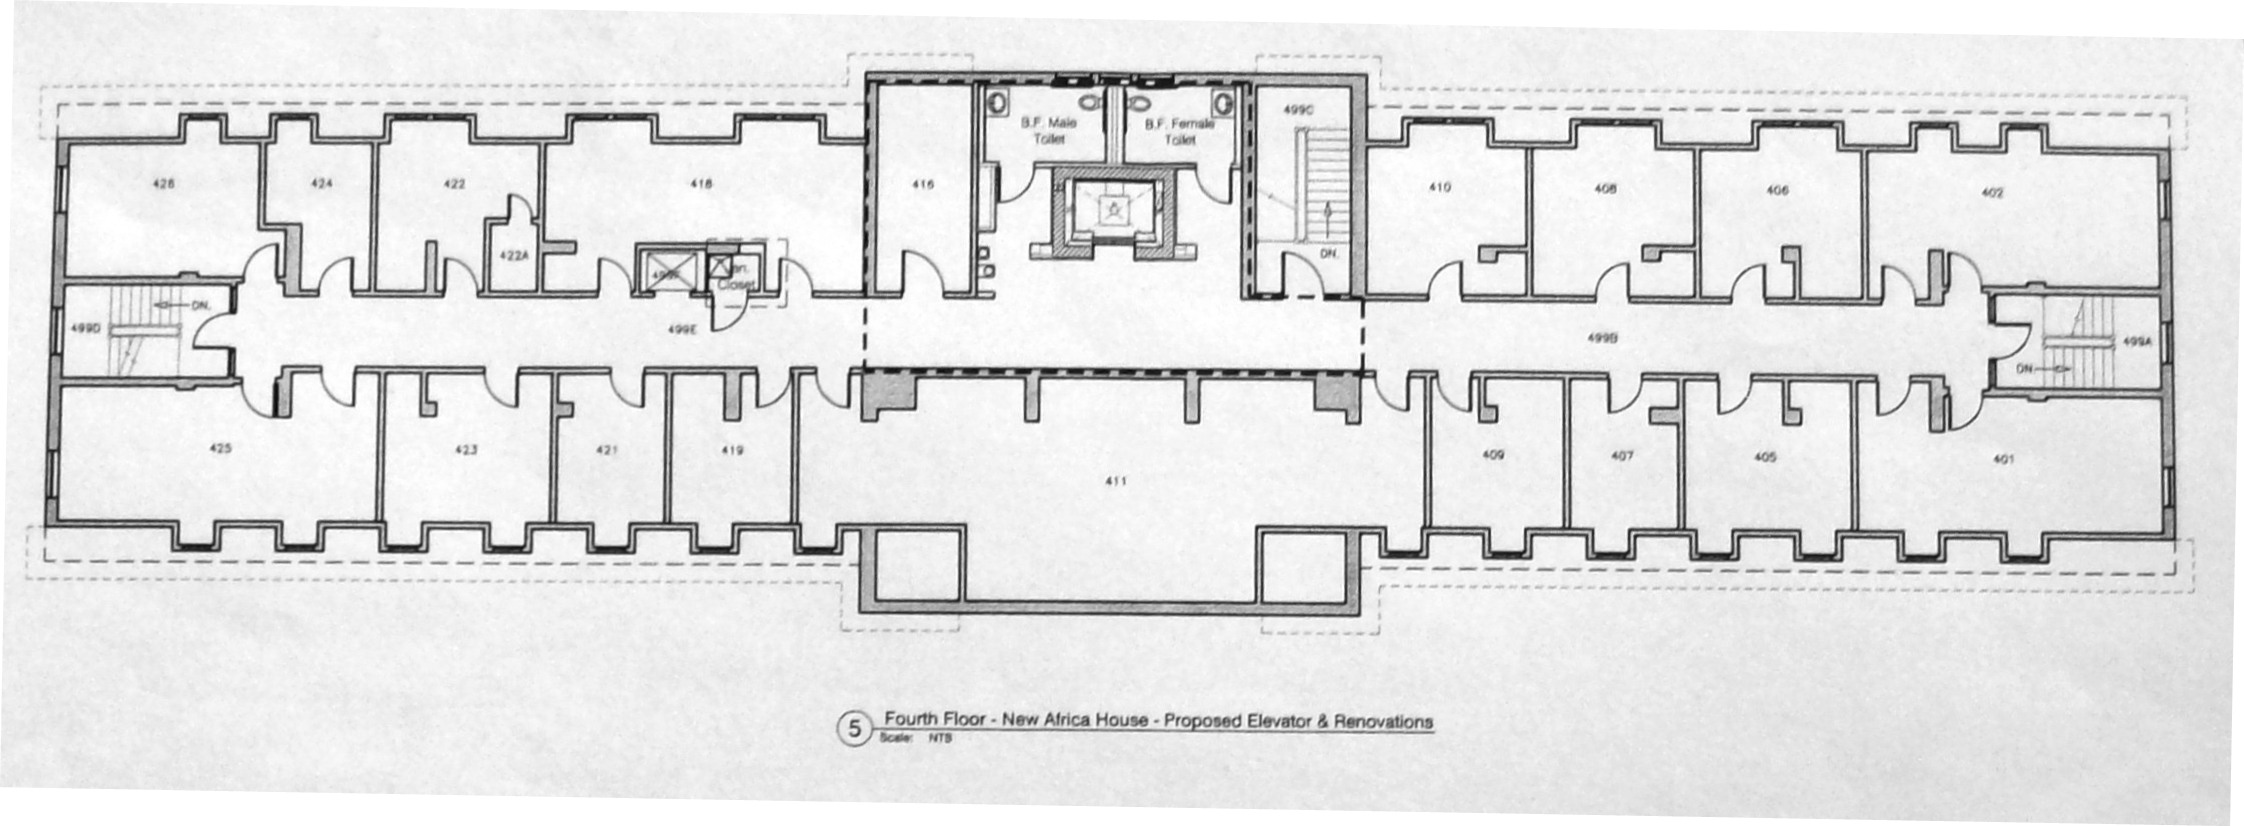 fraternity house plans - 28 images - frat house plans house style ...